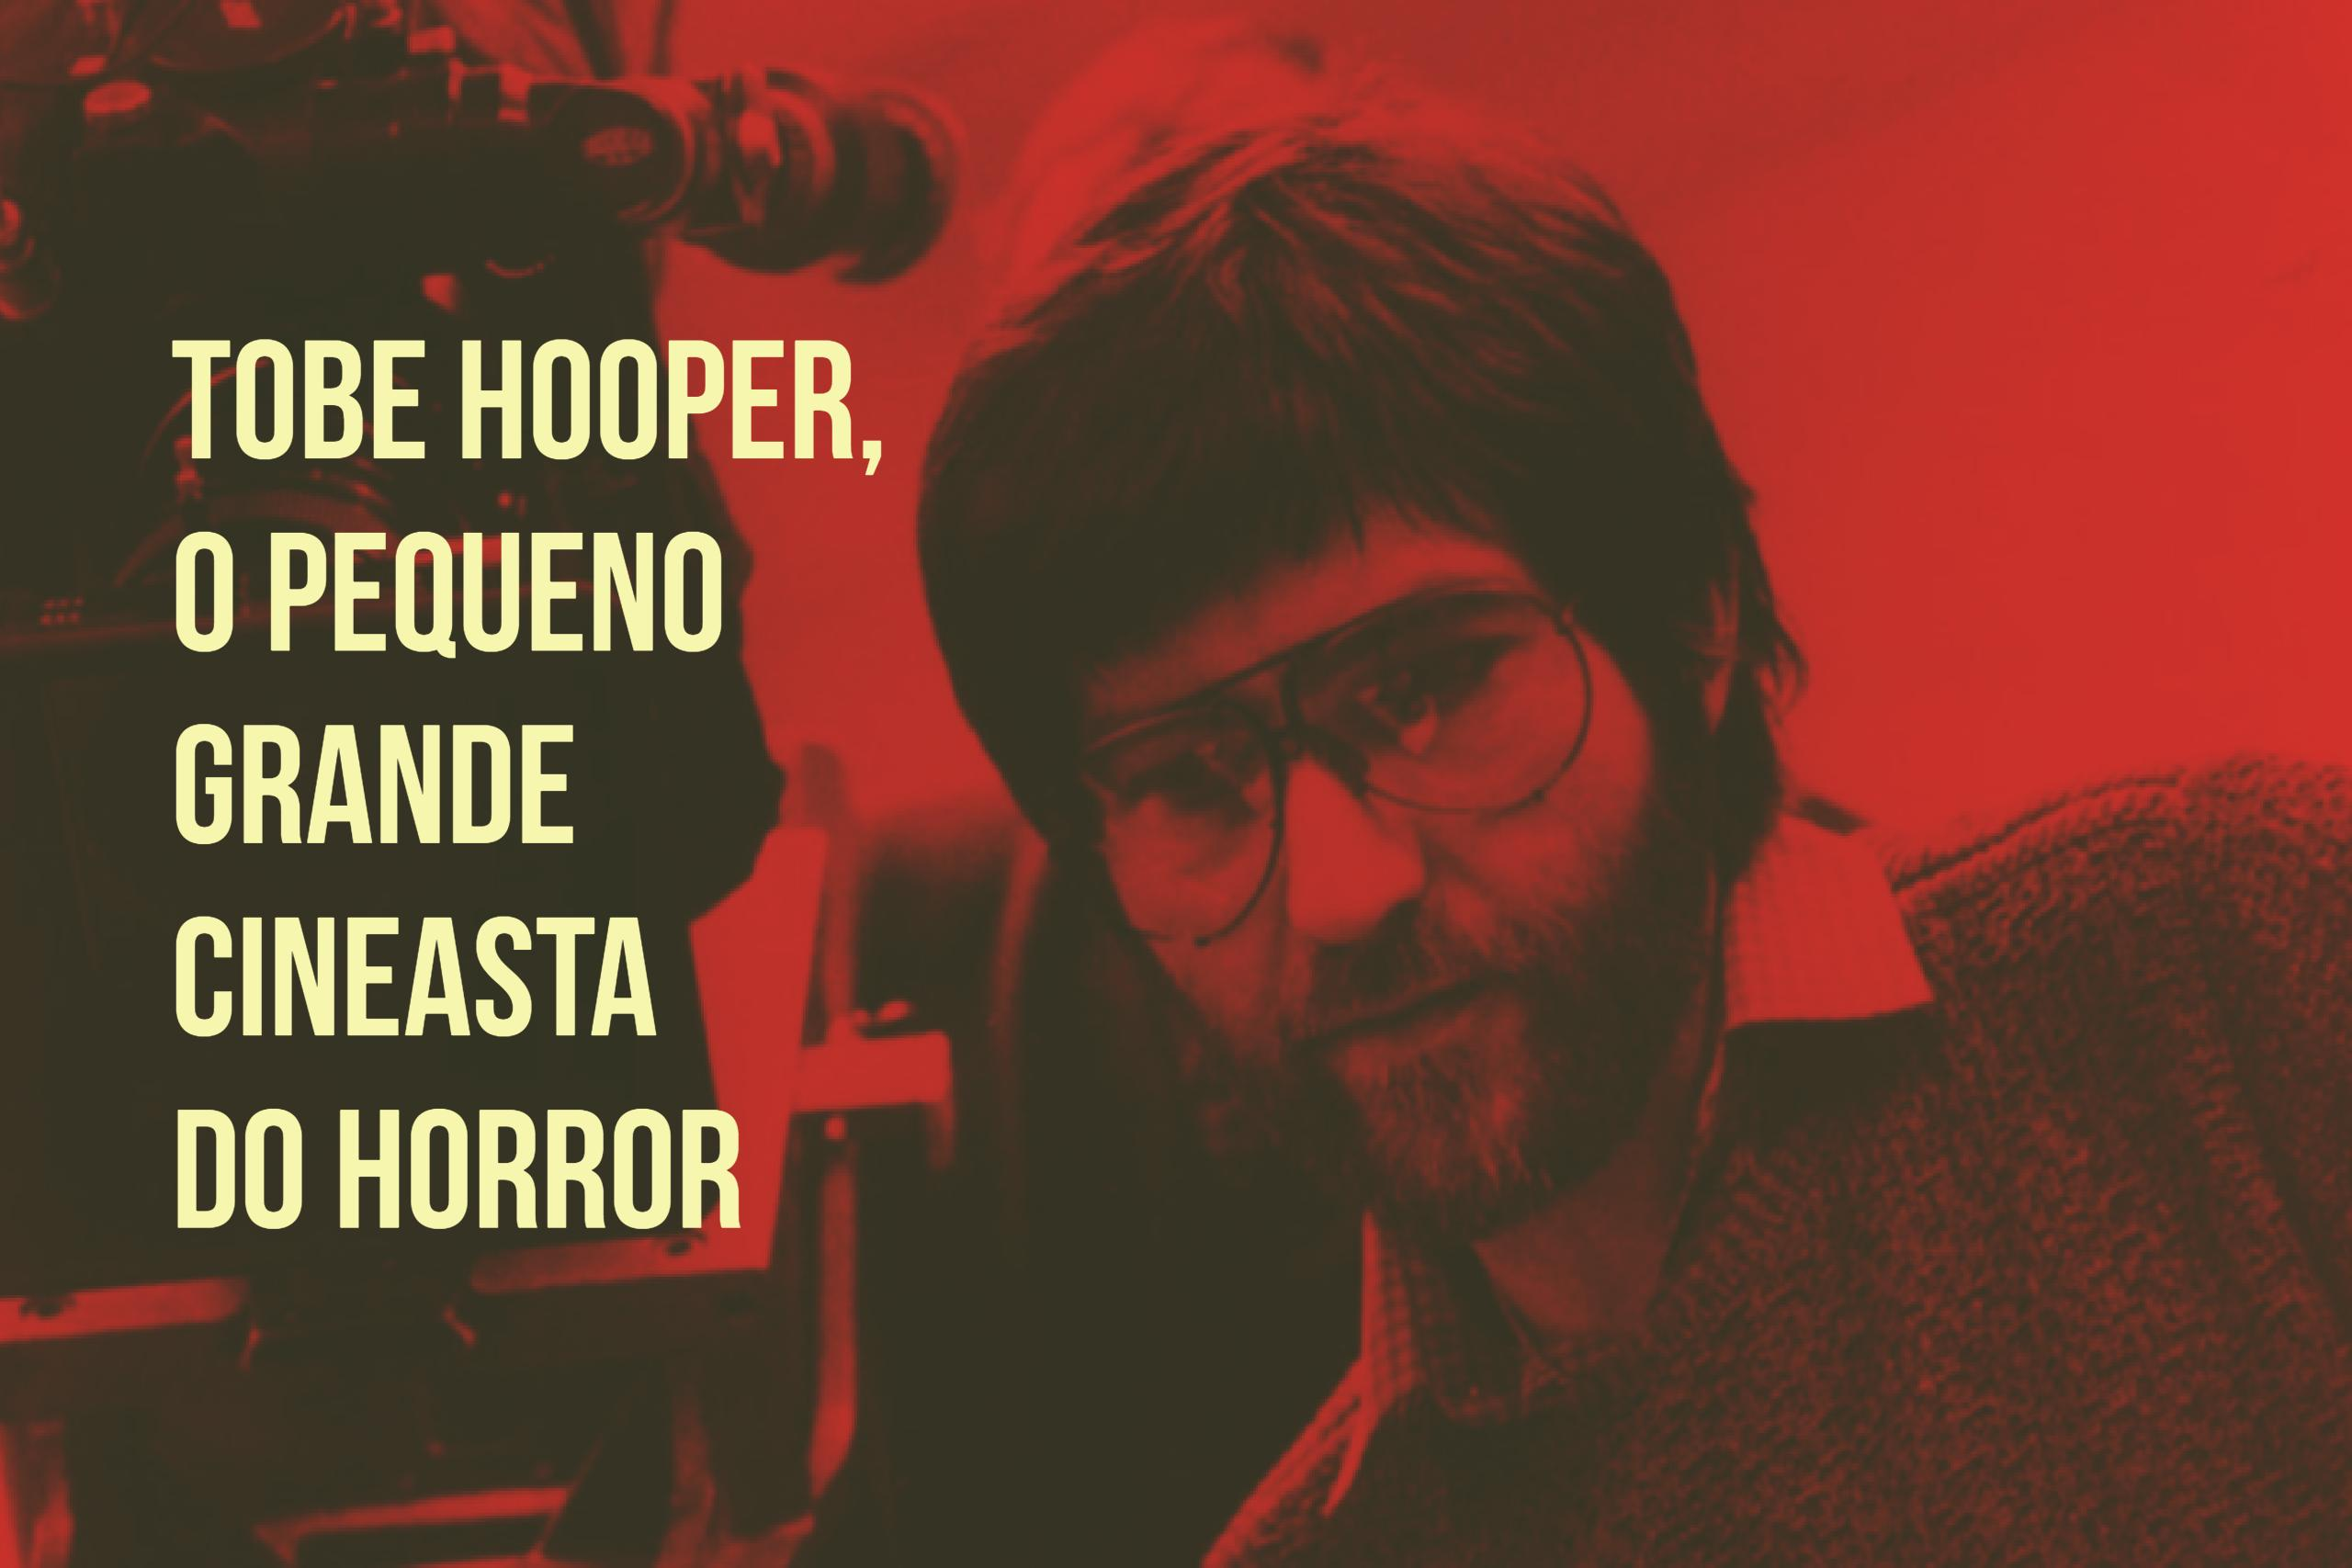 Tobe Hooper, o pequeno grande cineasta do Horror